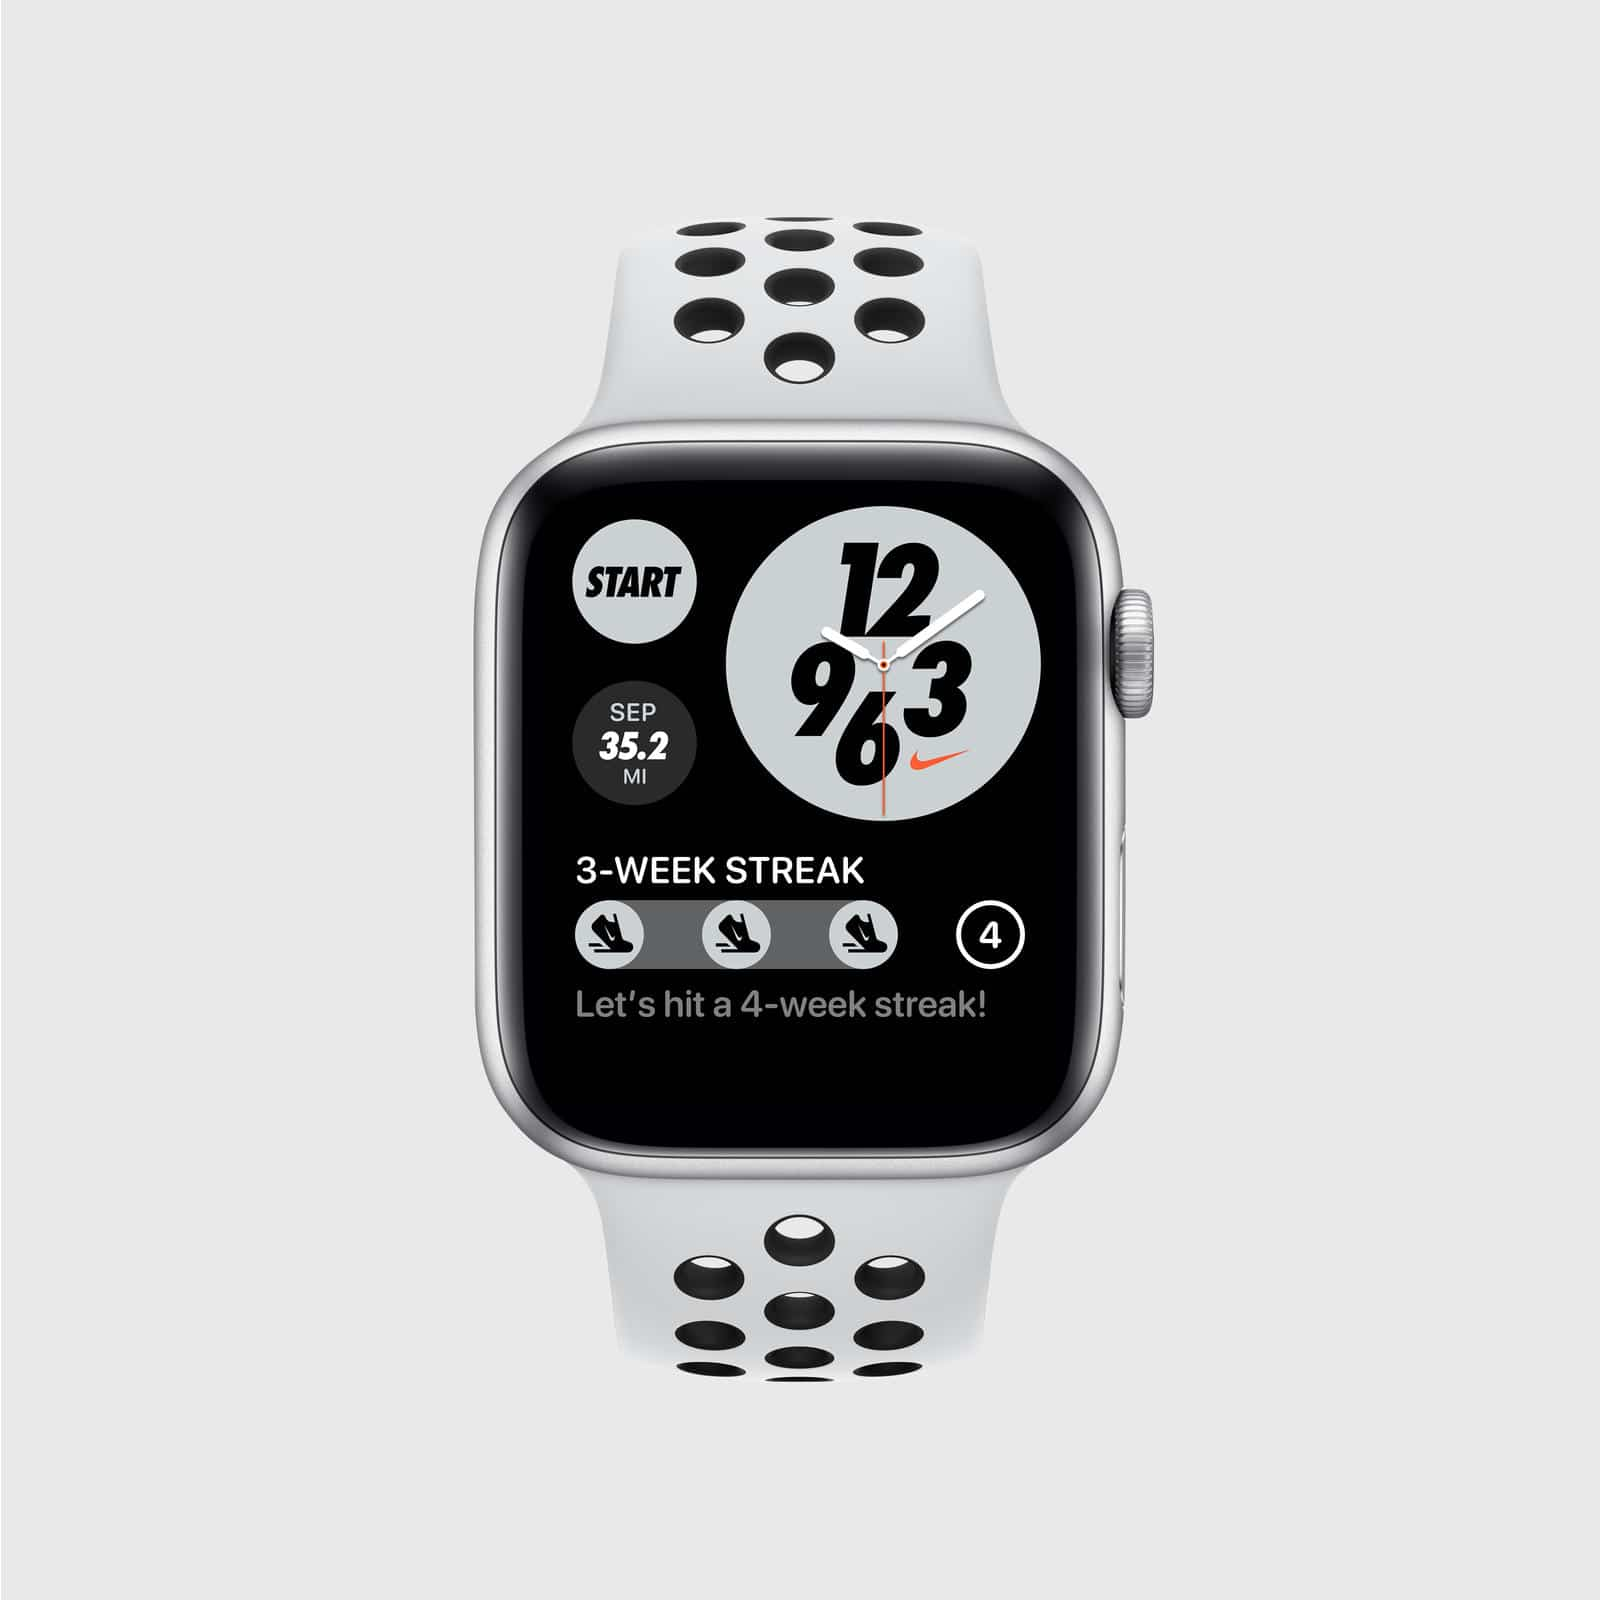 Novos recursos para o Apple Watch Nike